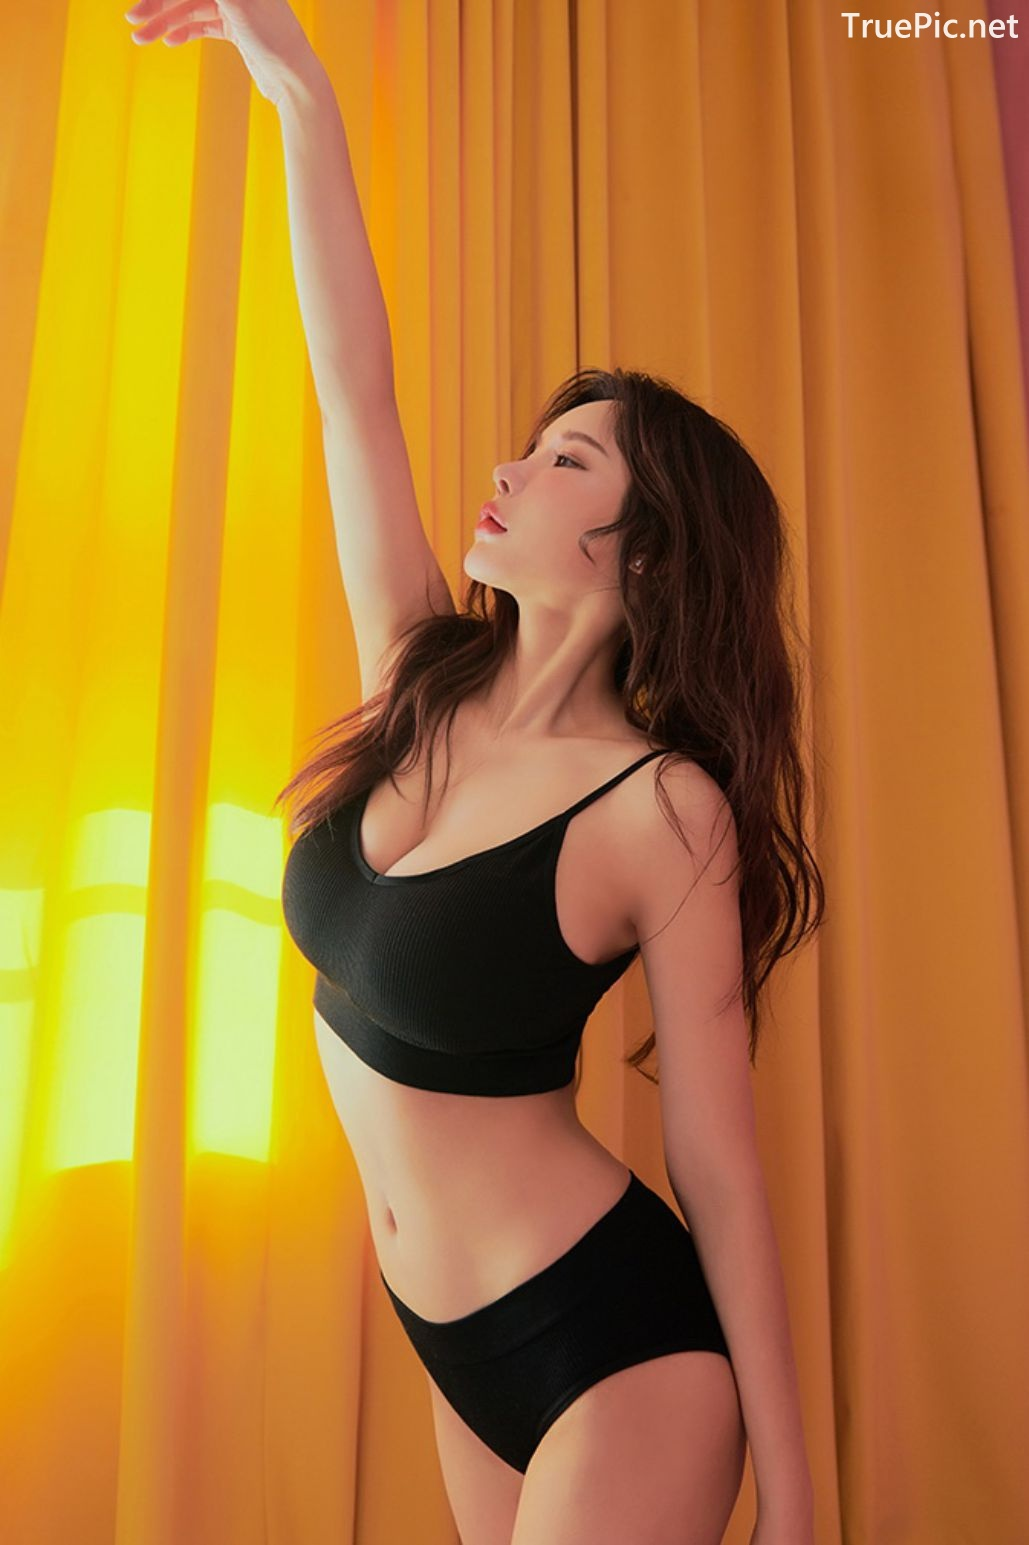 Image Korean Fashion Model - Lee A Yoon - Good Night Top Bra - TruePic.net - Picture-2